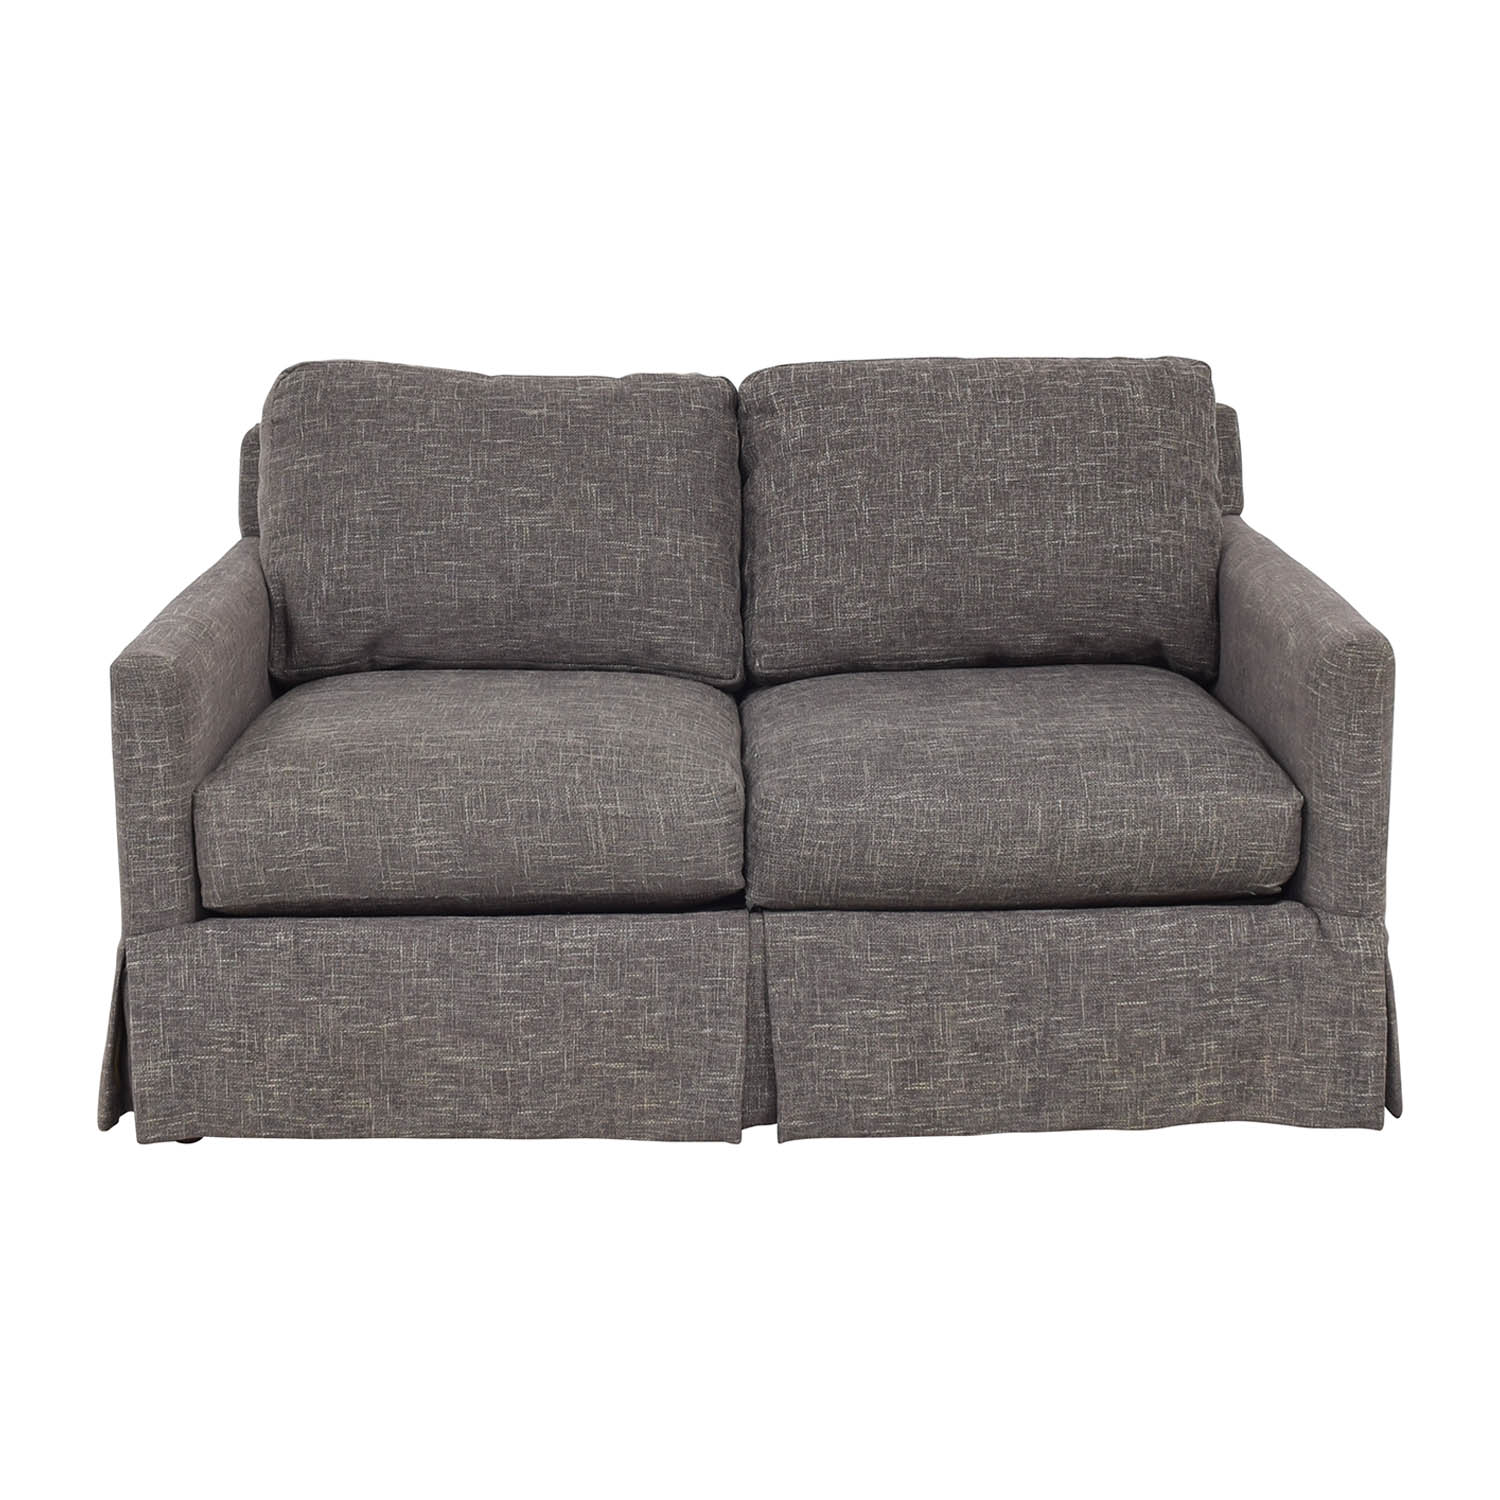 Thomasville Thomasville Two Seater Sofa price